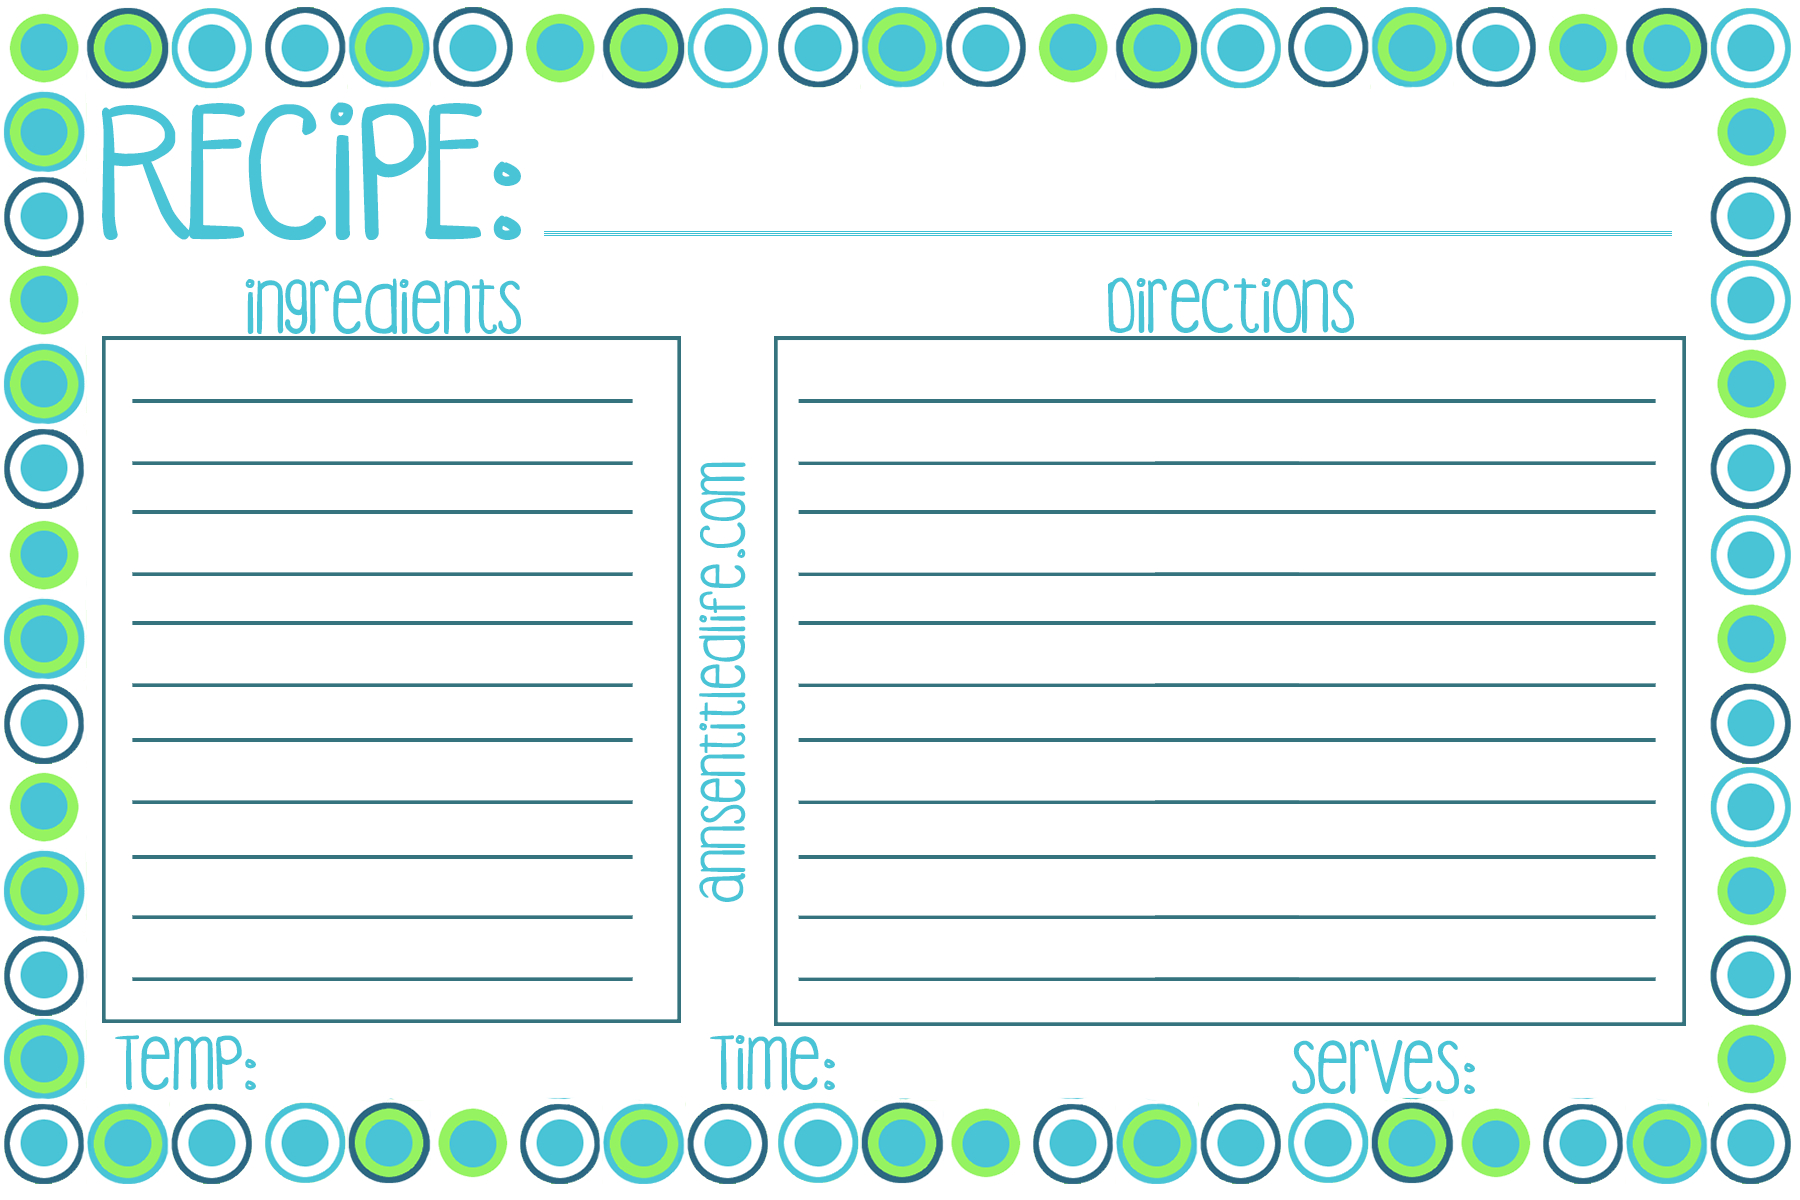 Free Printable Recipe Card, Meal Planner And Kitchen Labels - Free Printable Recipe Cards